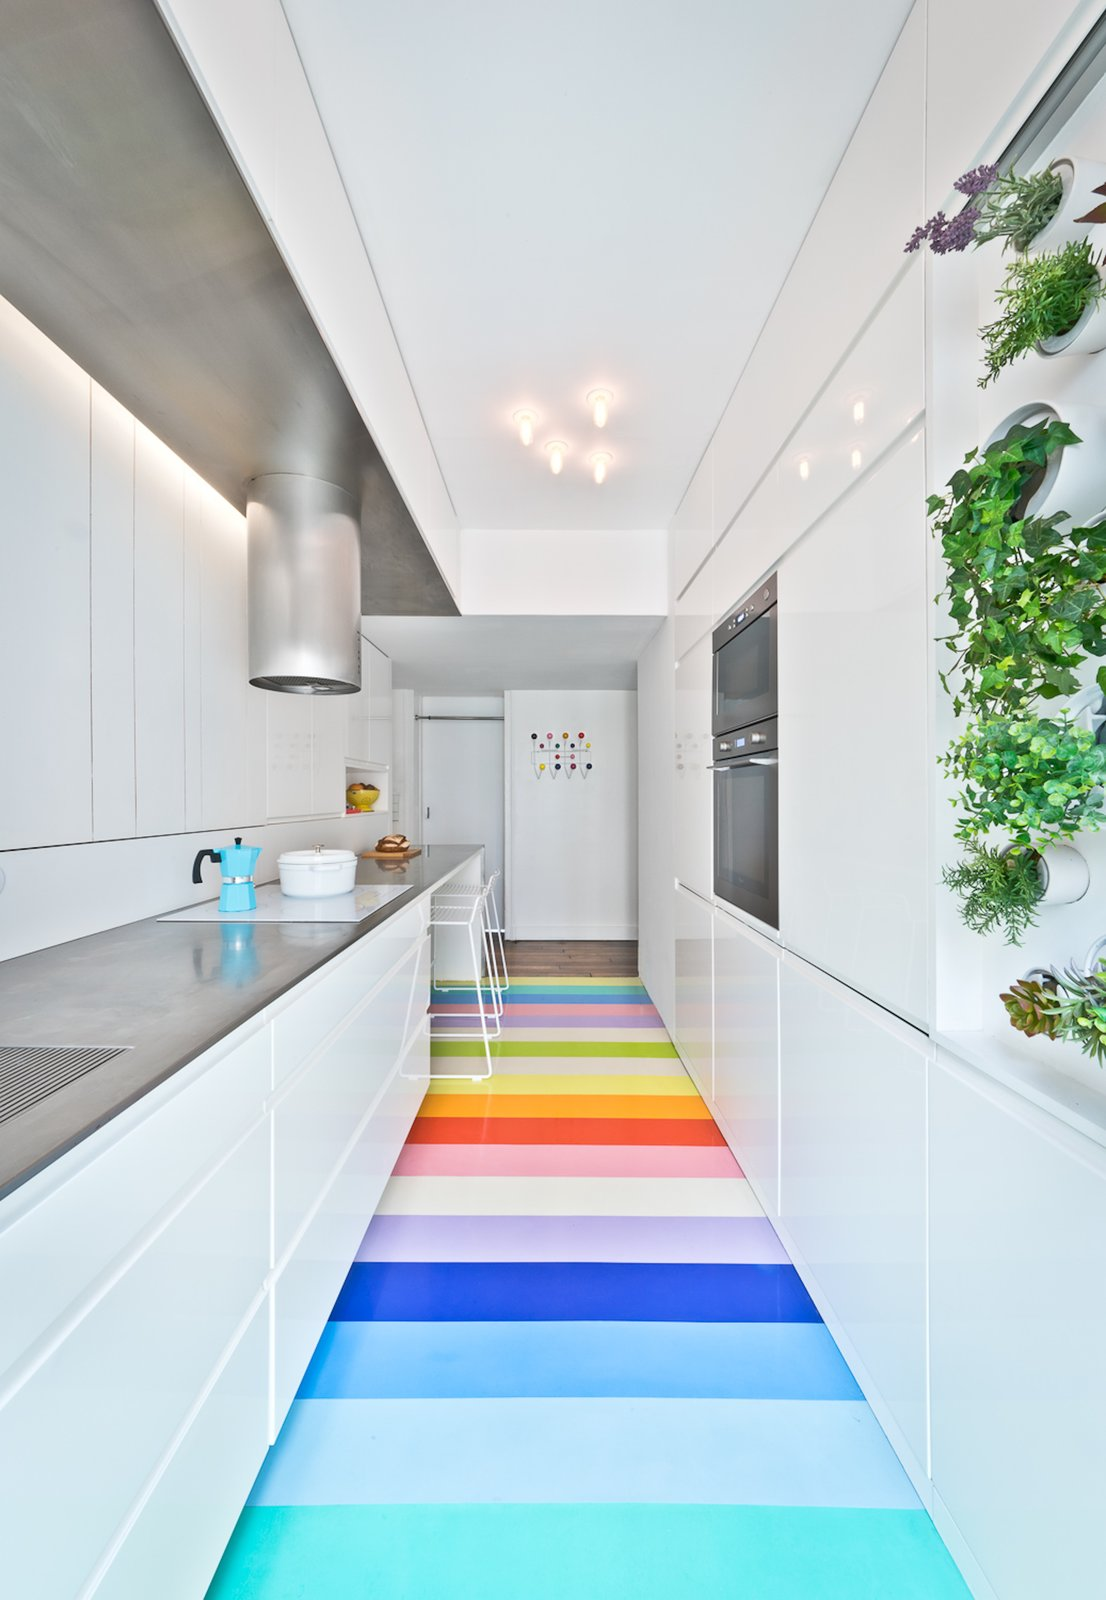 Hike renovated apartment kitchen with rainbow floor